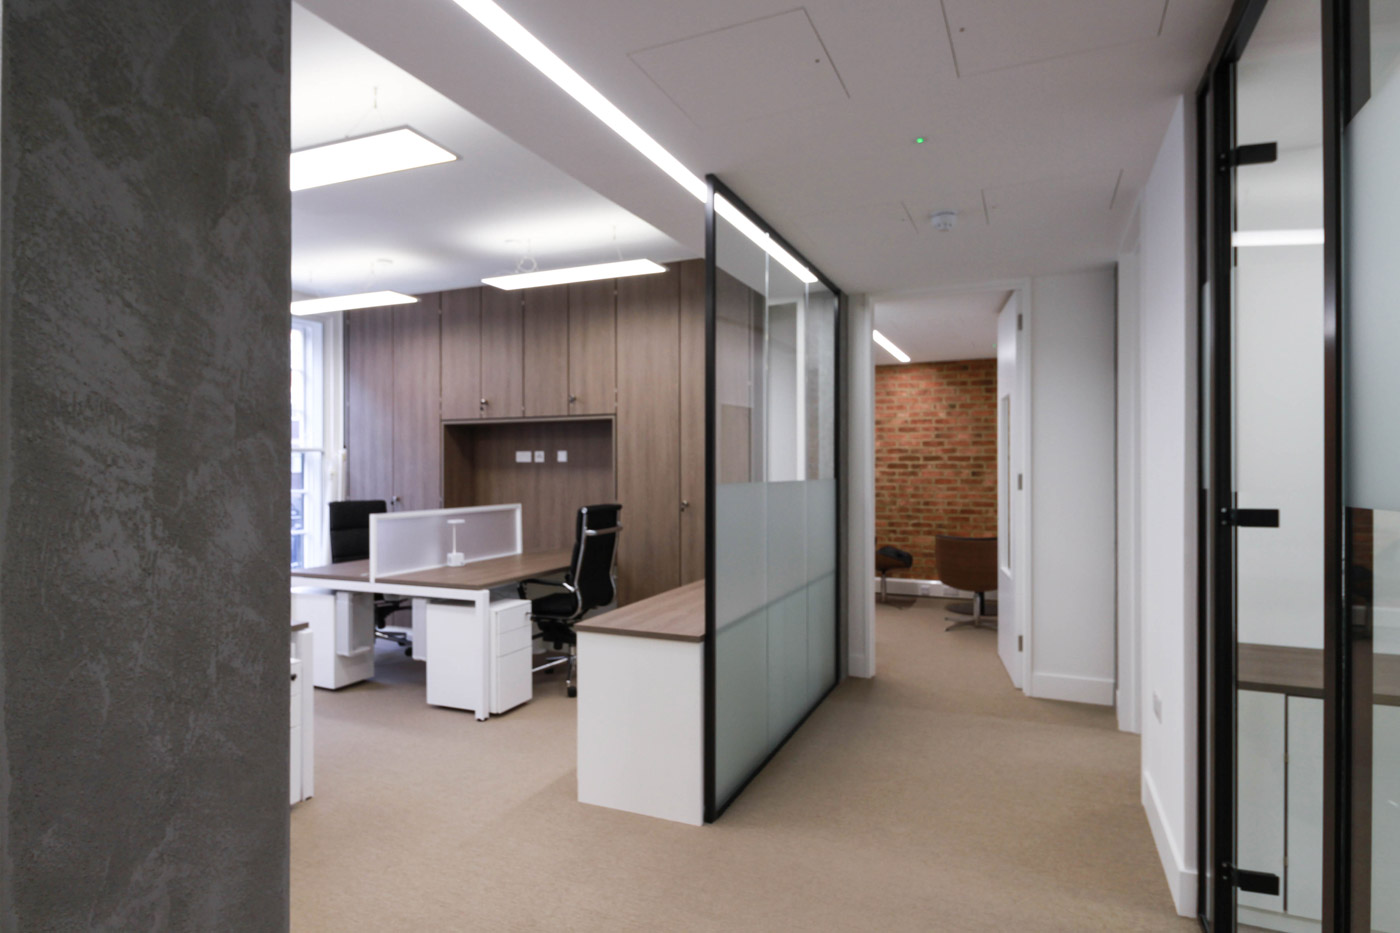 Office Interior Fit-Out Solutions